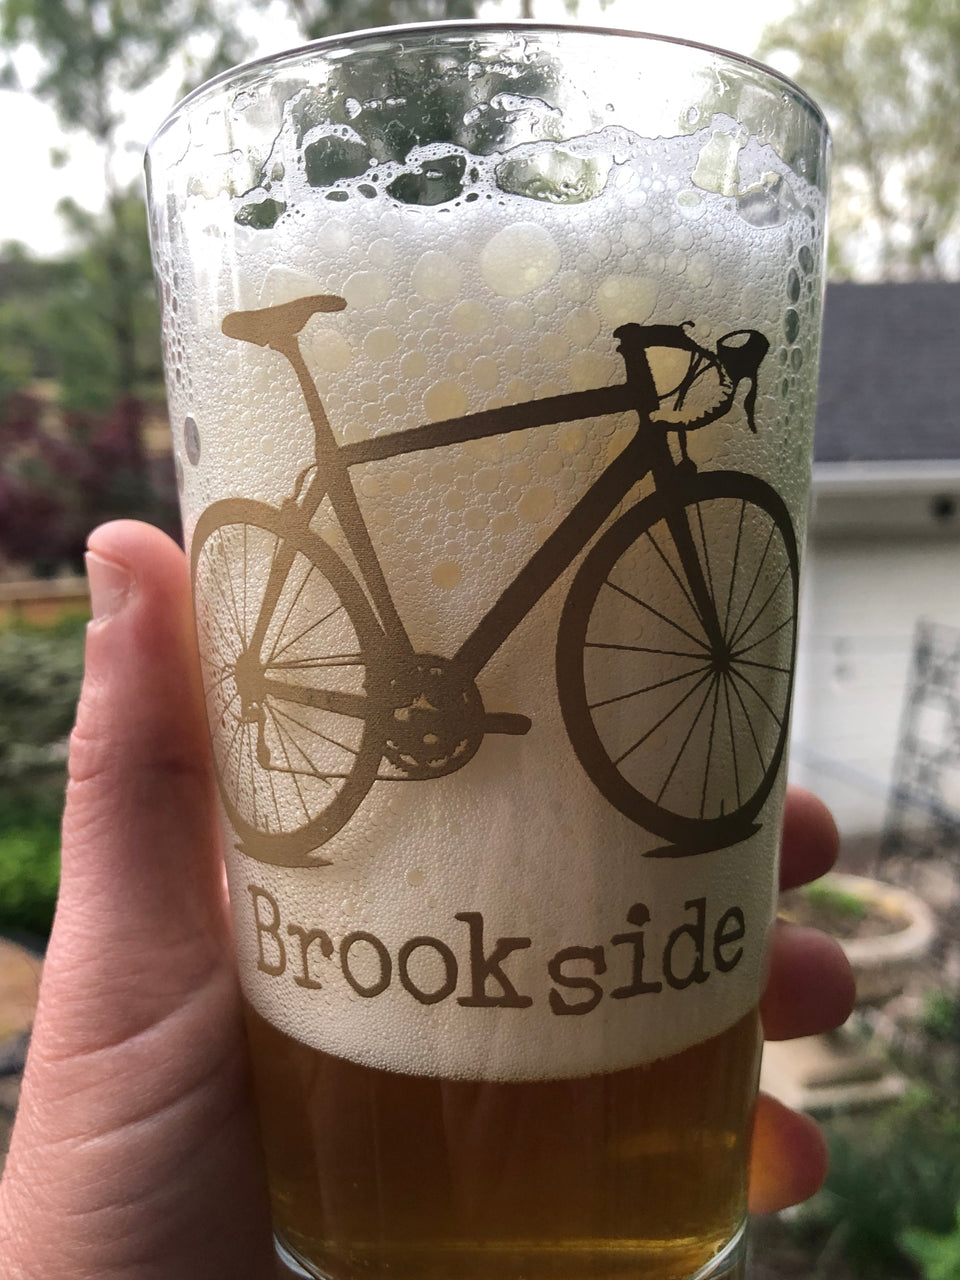 BROOKSIDE PINT GLASS